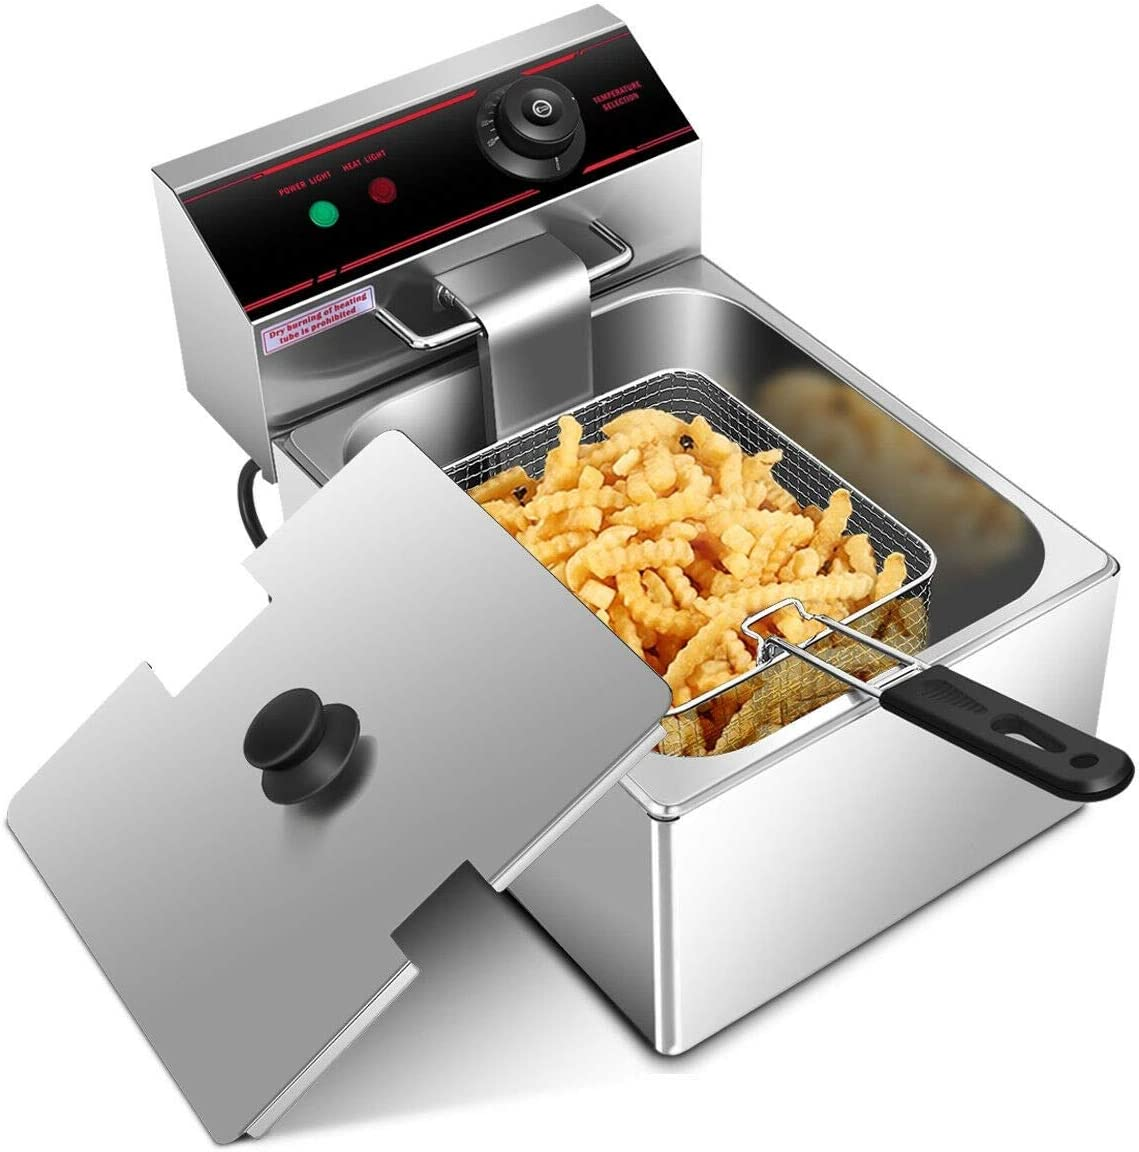 ARLIME Deep Fryer with Basket, 2500W Electric Stainless Steel Deep Fryer with 6.4 Quart Oil Container & Lid, Adjustable Temperature, Large Capacity Kitchen Frying Machine Perfect for Chicken, Shrimp, French Fries and More